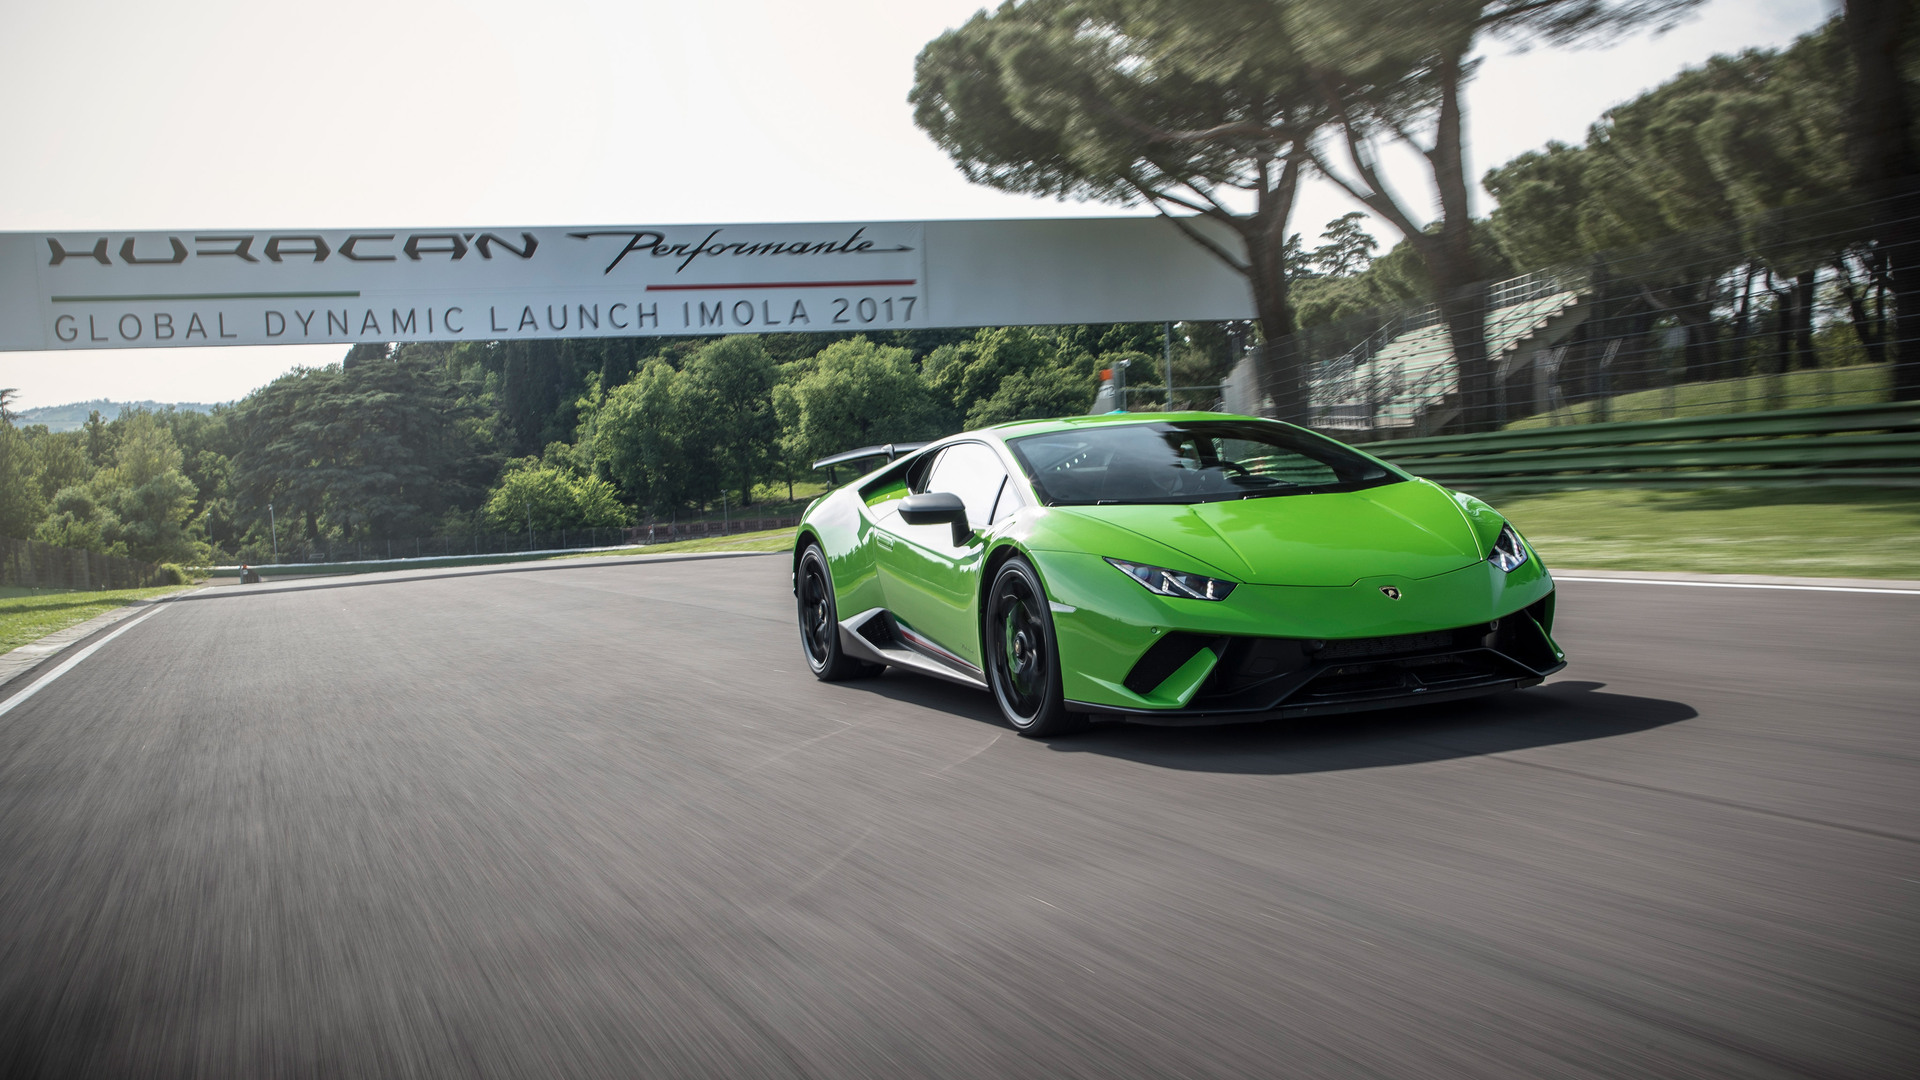 1920x1080 Lamborghini Huracan Performante Super Car Laptop Full Hd